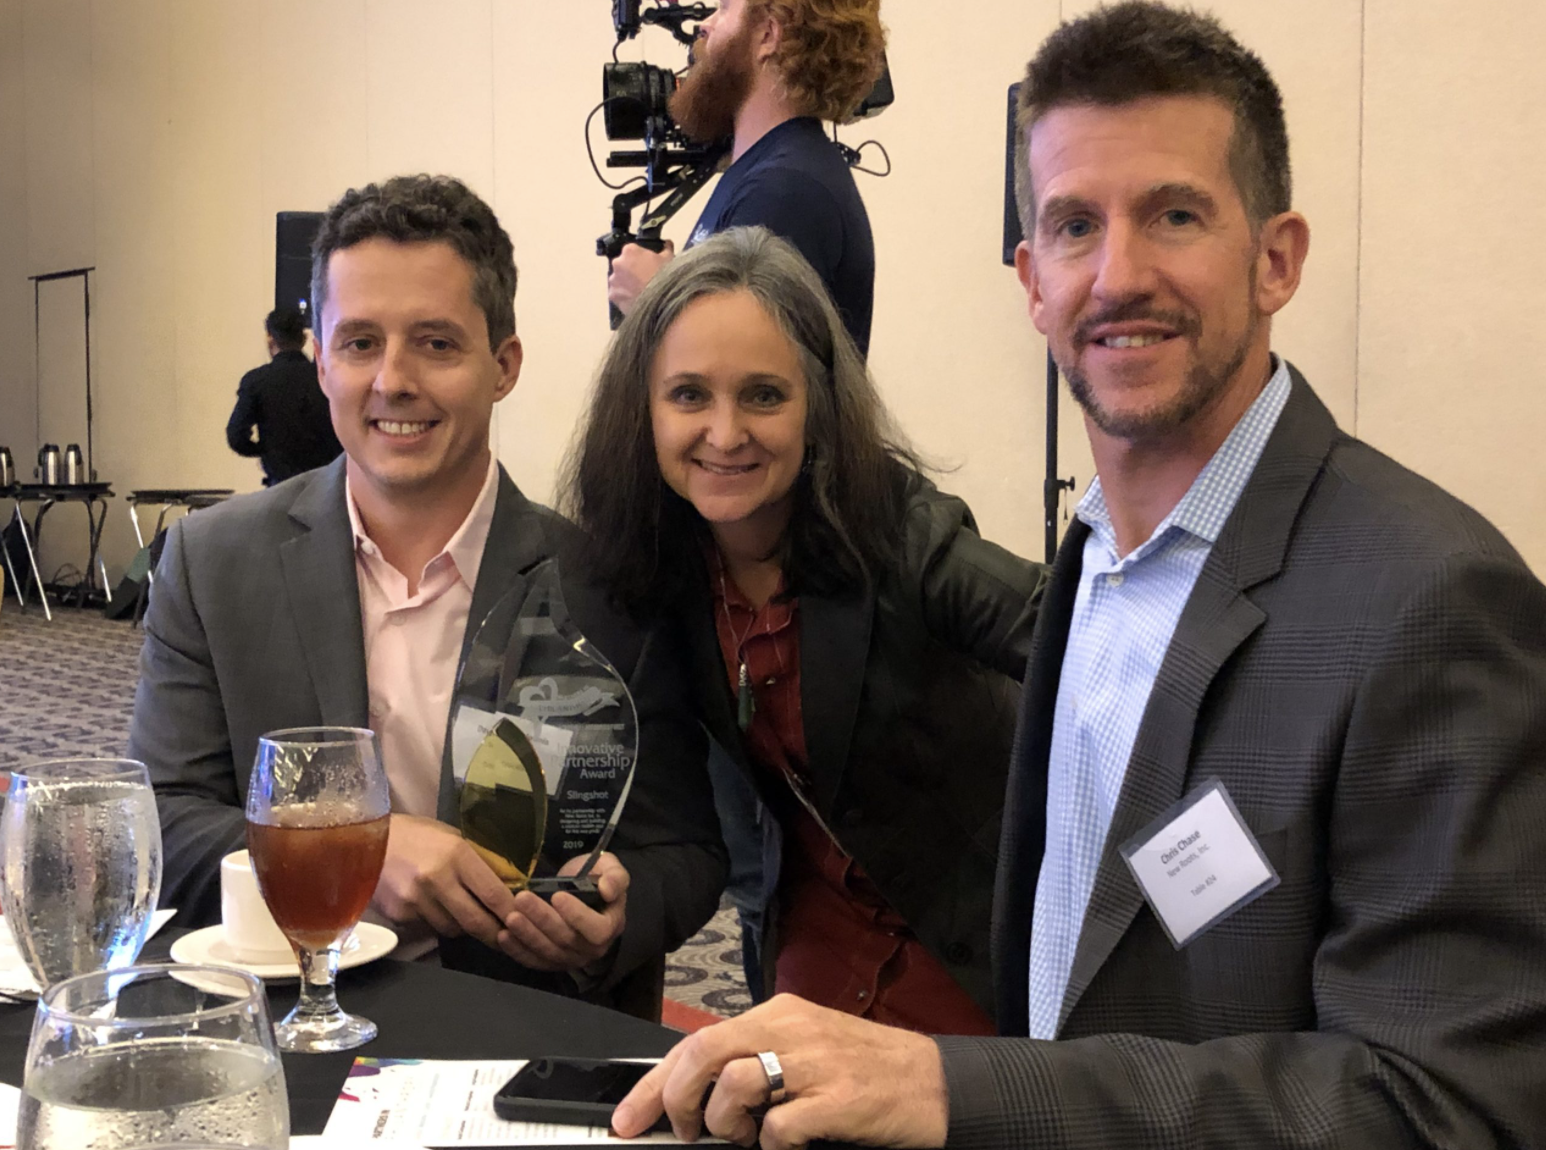 David Galownia (Slingshot), me, and Chris Chase (Discernity) receiving the Innovative Partnership Award from Louisville's Business First's Partners in Philanthropy, August, 2019.